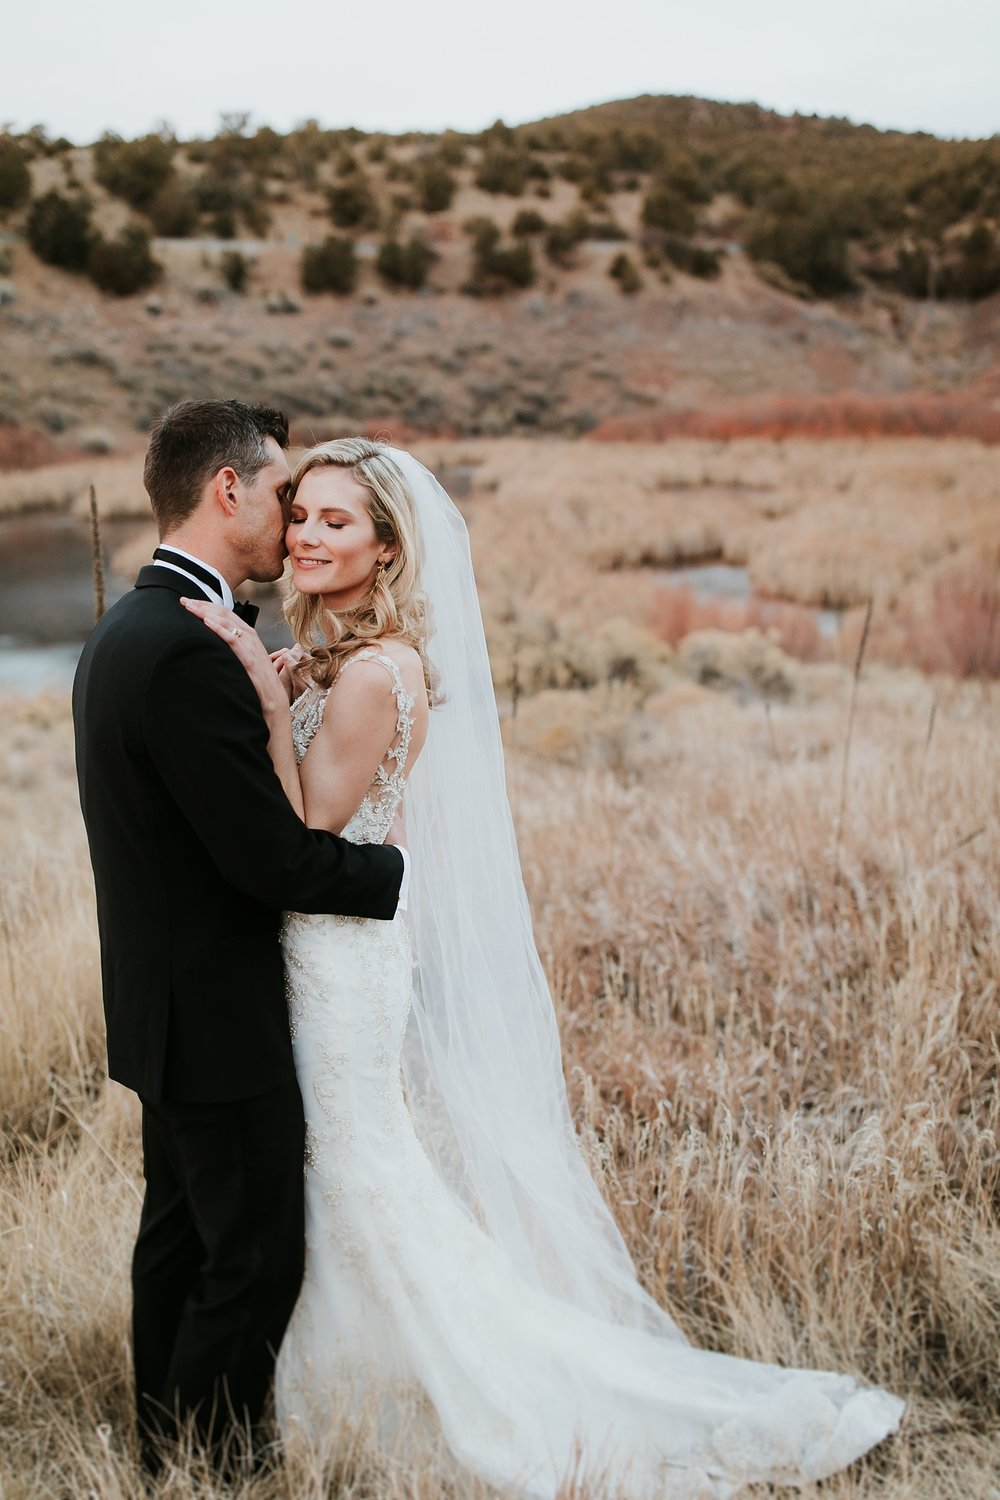 Alicia+lucia+photography+-+albuquerque+wedding+photographer+-+santa+fe+wedding+photography+-+new+mexico+wedding+photographer+-+la+fonda+wedding+-+la+fonda+winter+wedding_0103.jpg